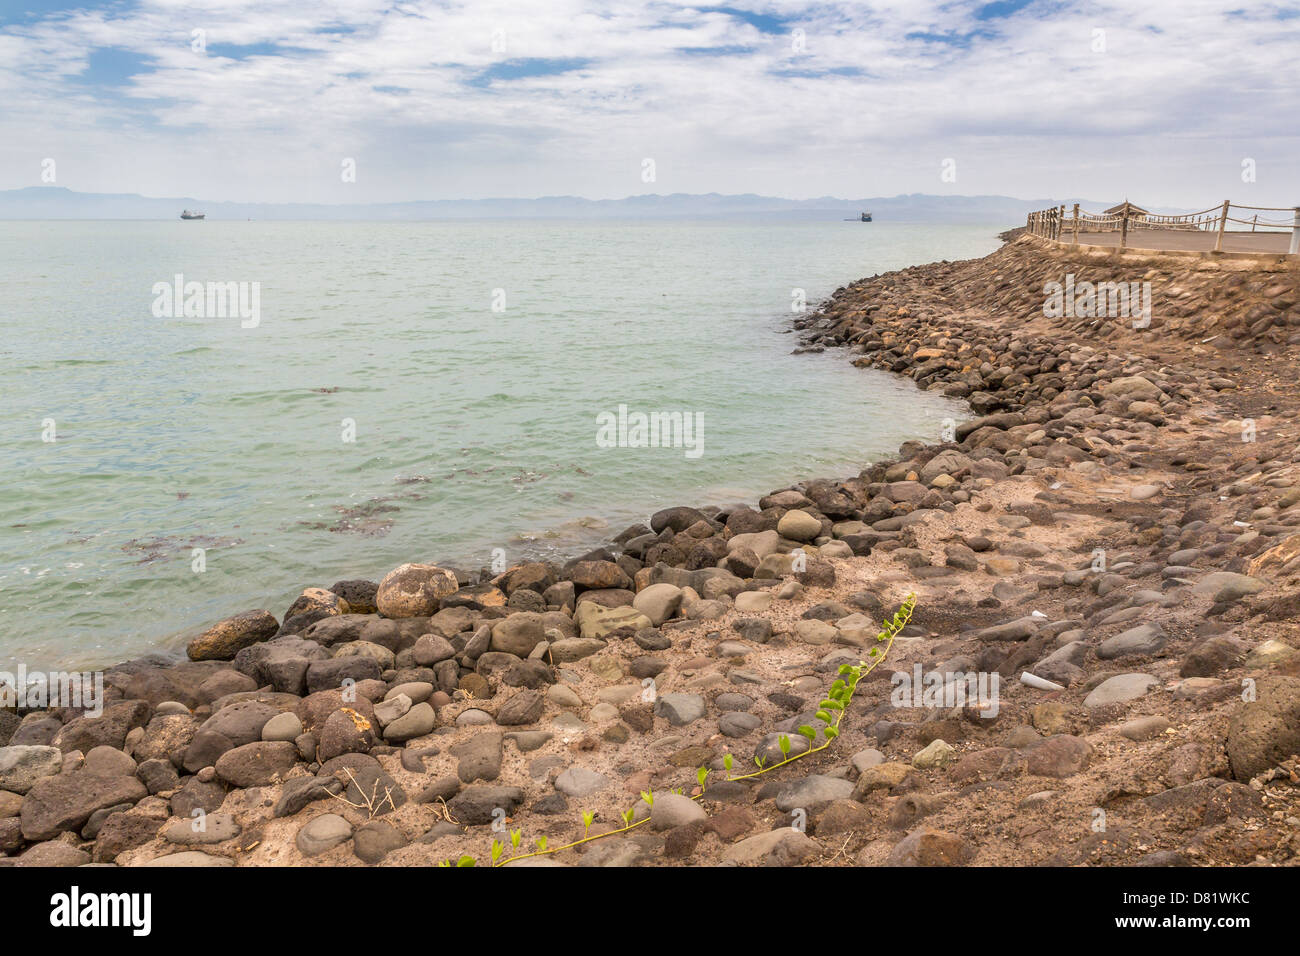 The shores of the Red sea in Djibouti - Stock Image